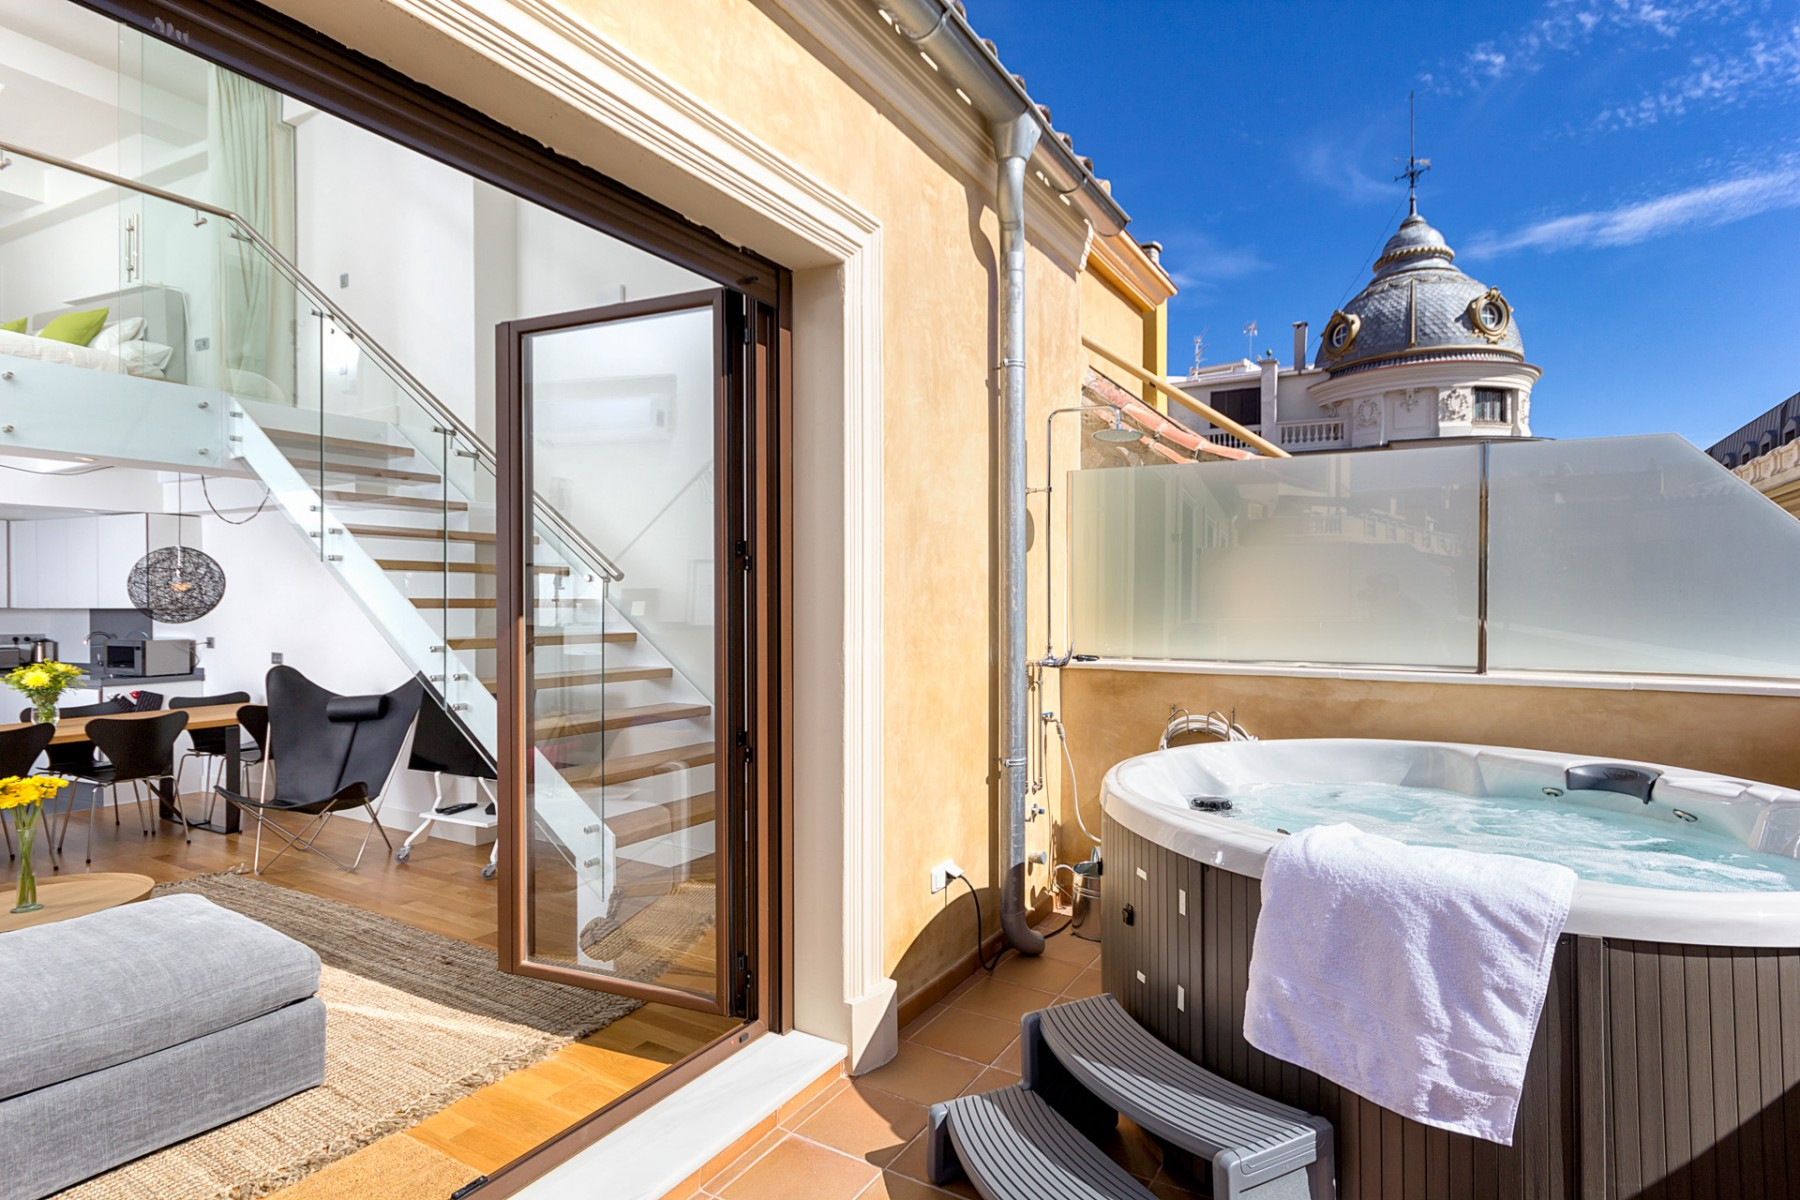 Luxury Penthouse With Jacuzzi In The Heart Of Malaga City CentreBritta